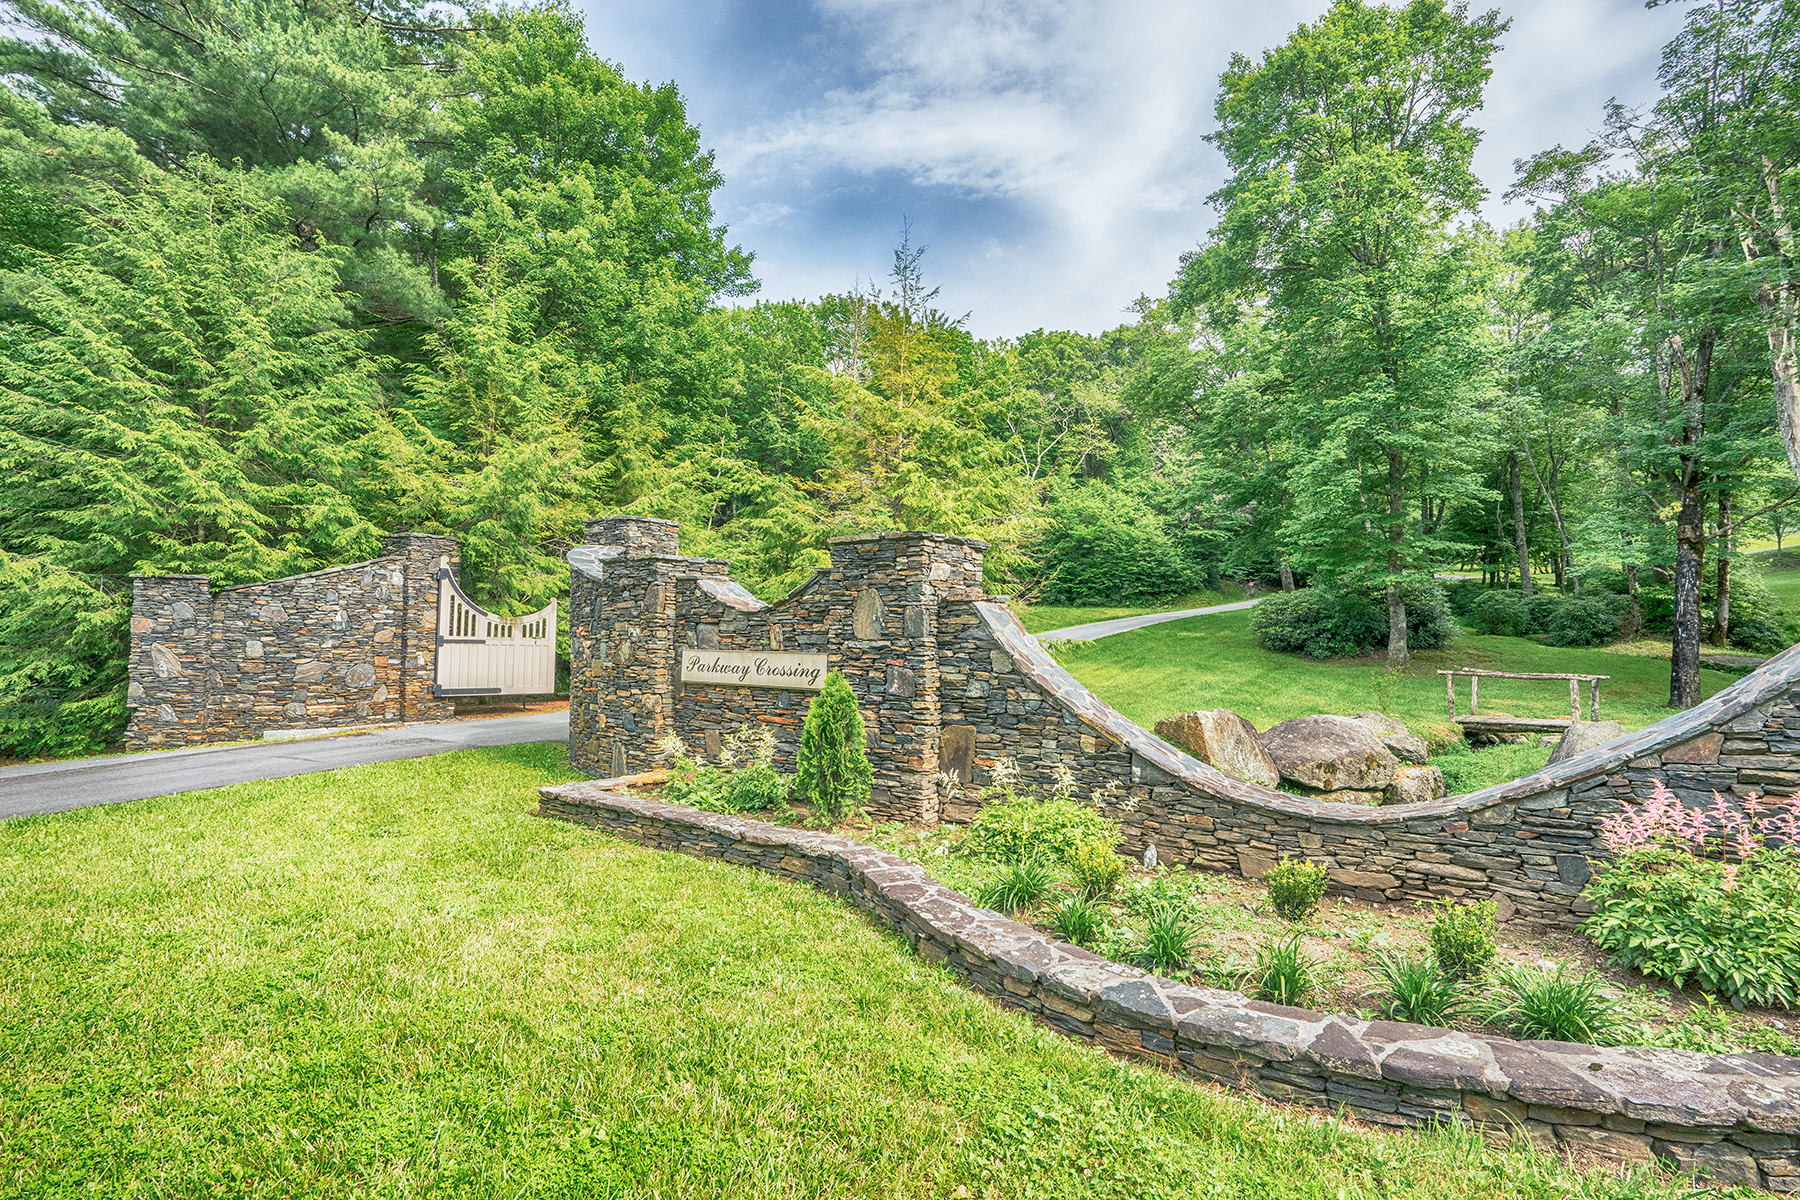 Land for Sale at BLOWING ROCK - PARKWAY CROSSING Lot 13 Cielo Road Blowing Rock, North Carolina 28605 United States